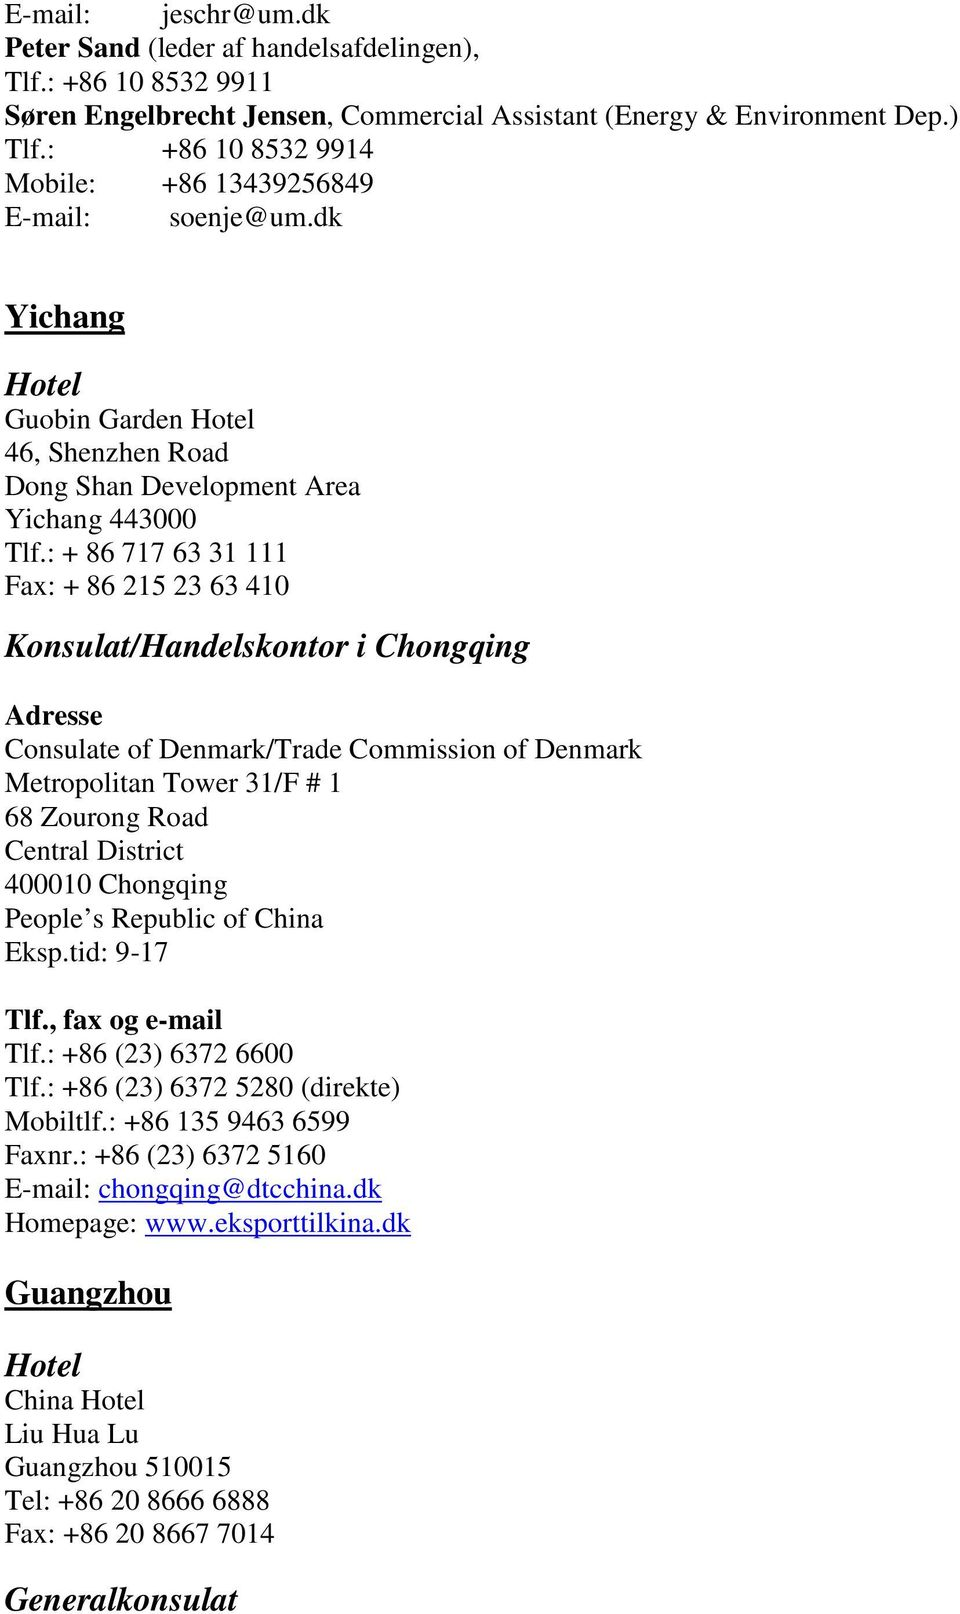 : + 86 717 63 31 111 Fax: + 86 215 23 63 410 Konsulat/Handelskontor i Chongqing Adresse Consulate of Denmark/Trade Commission of Denmark Metropolitan Tower 31/F # 1 68 Zourong Road Central District